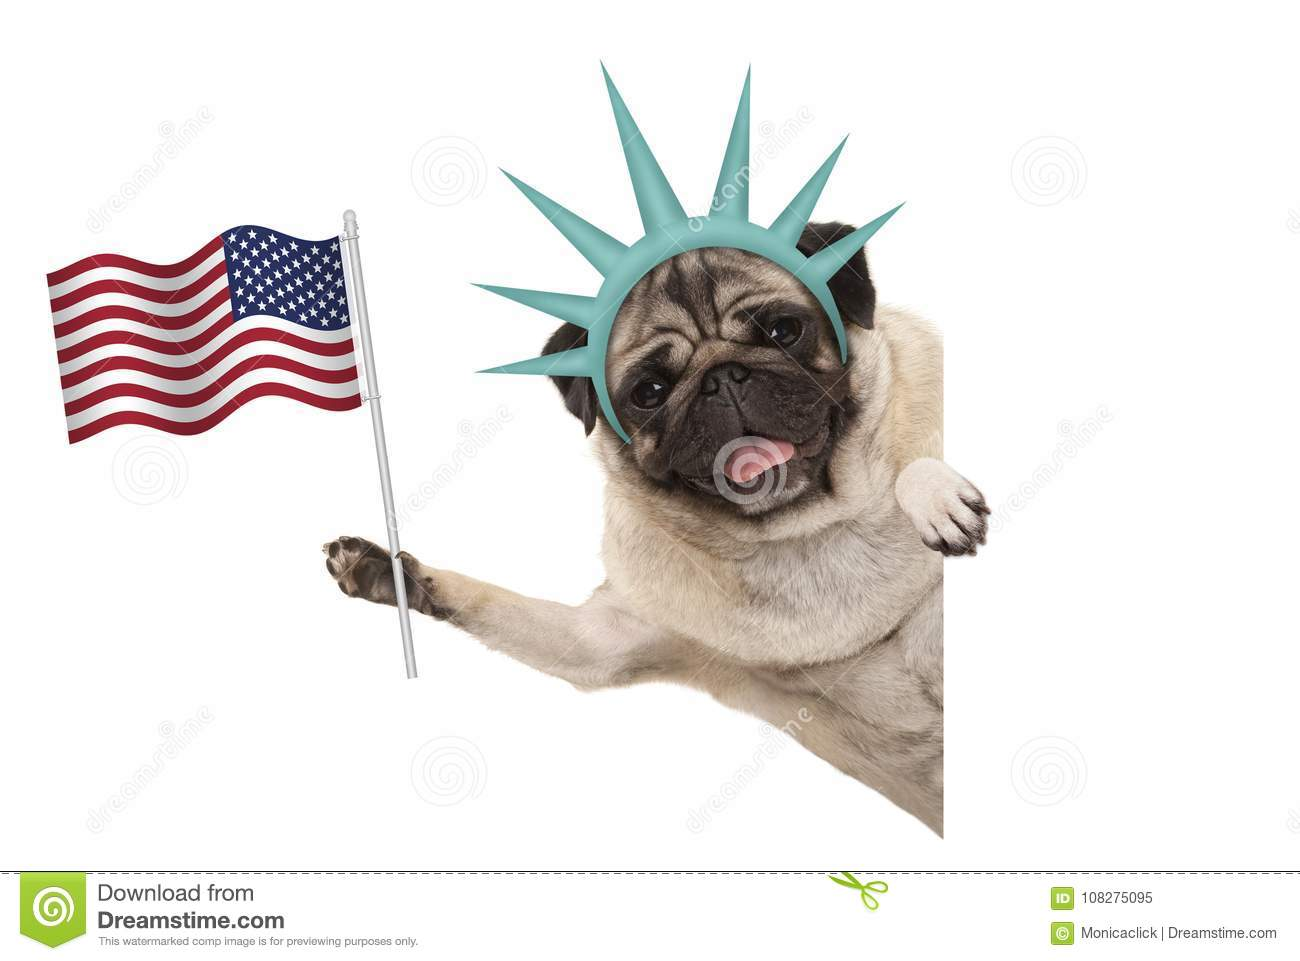 Download Smiling Pug Puppy Dog Holding Up American Flag Sideways From White Banner Wearing